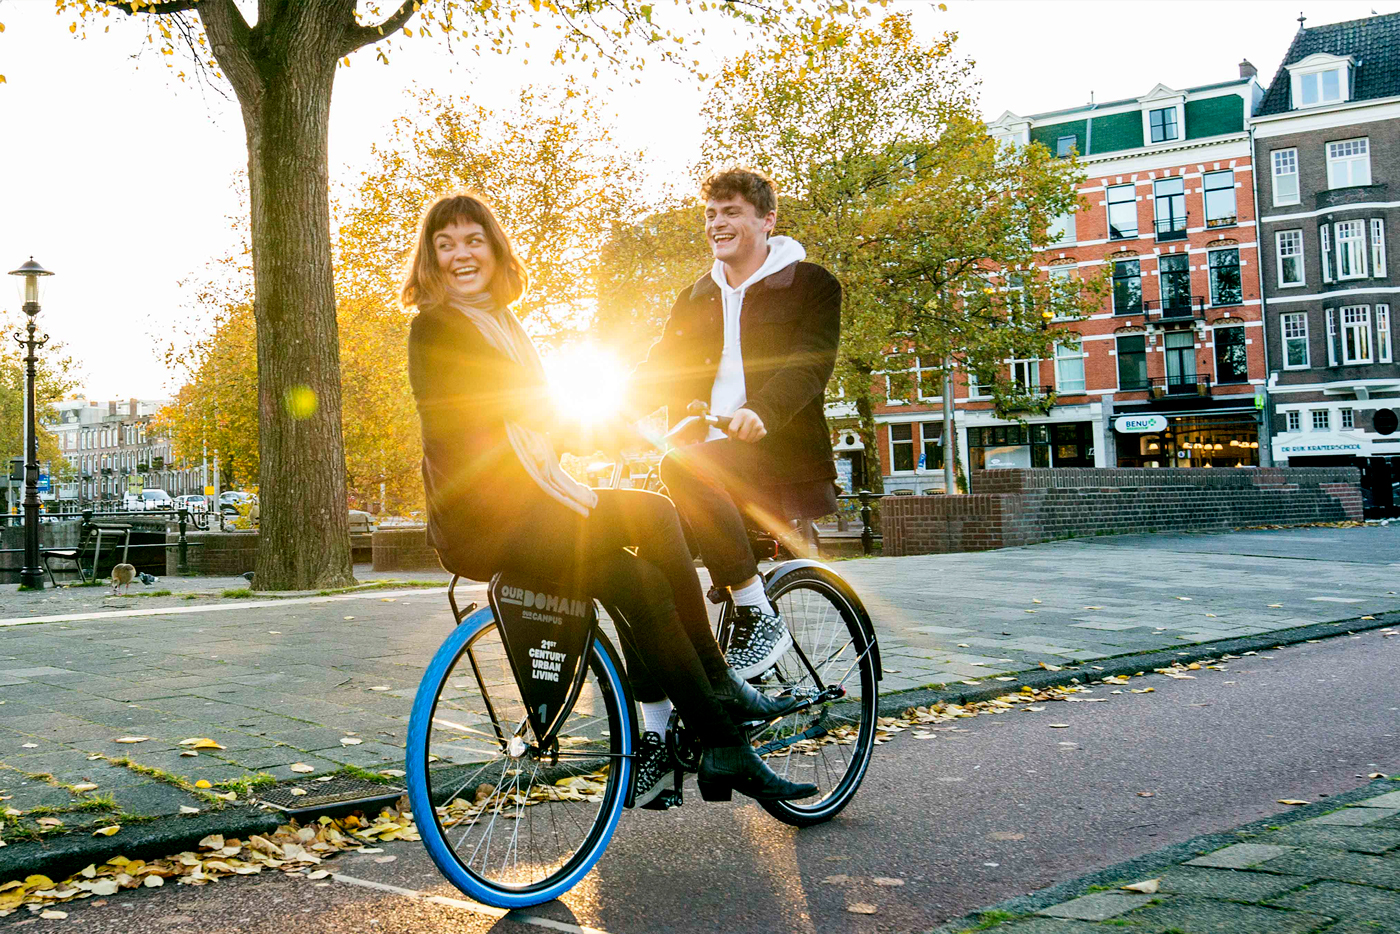 Guy riding a bike in Amsterdam bringing another girl